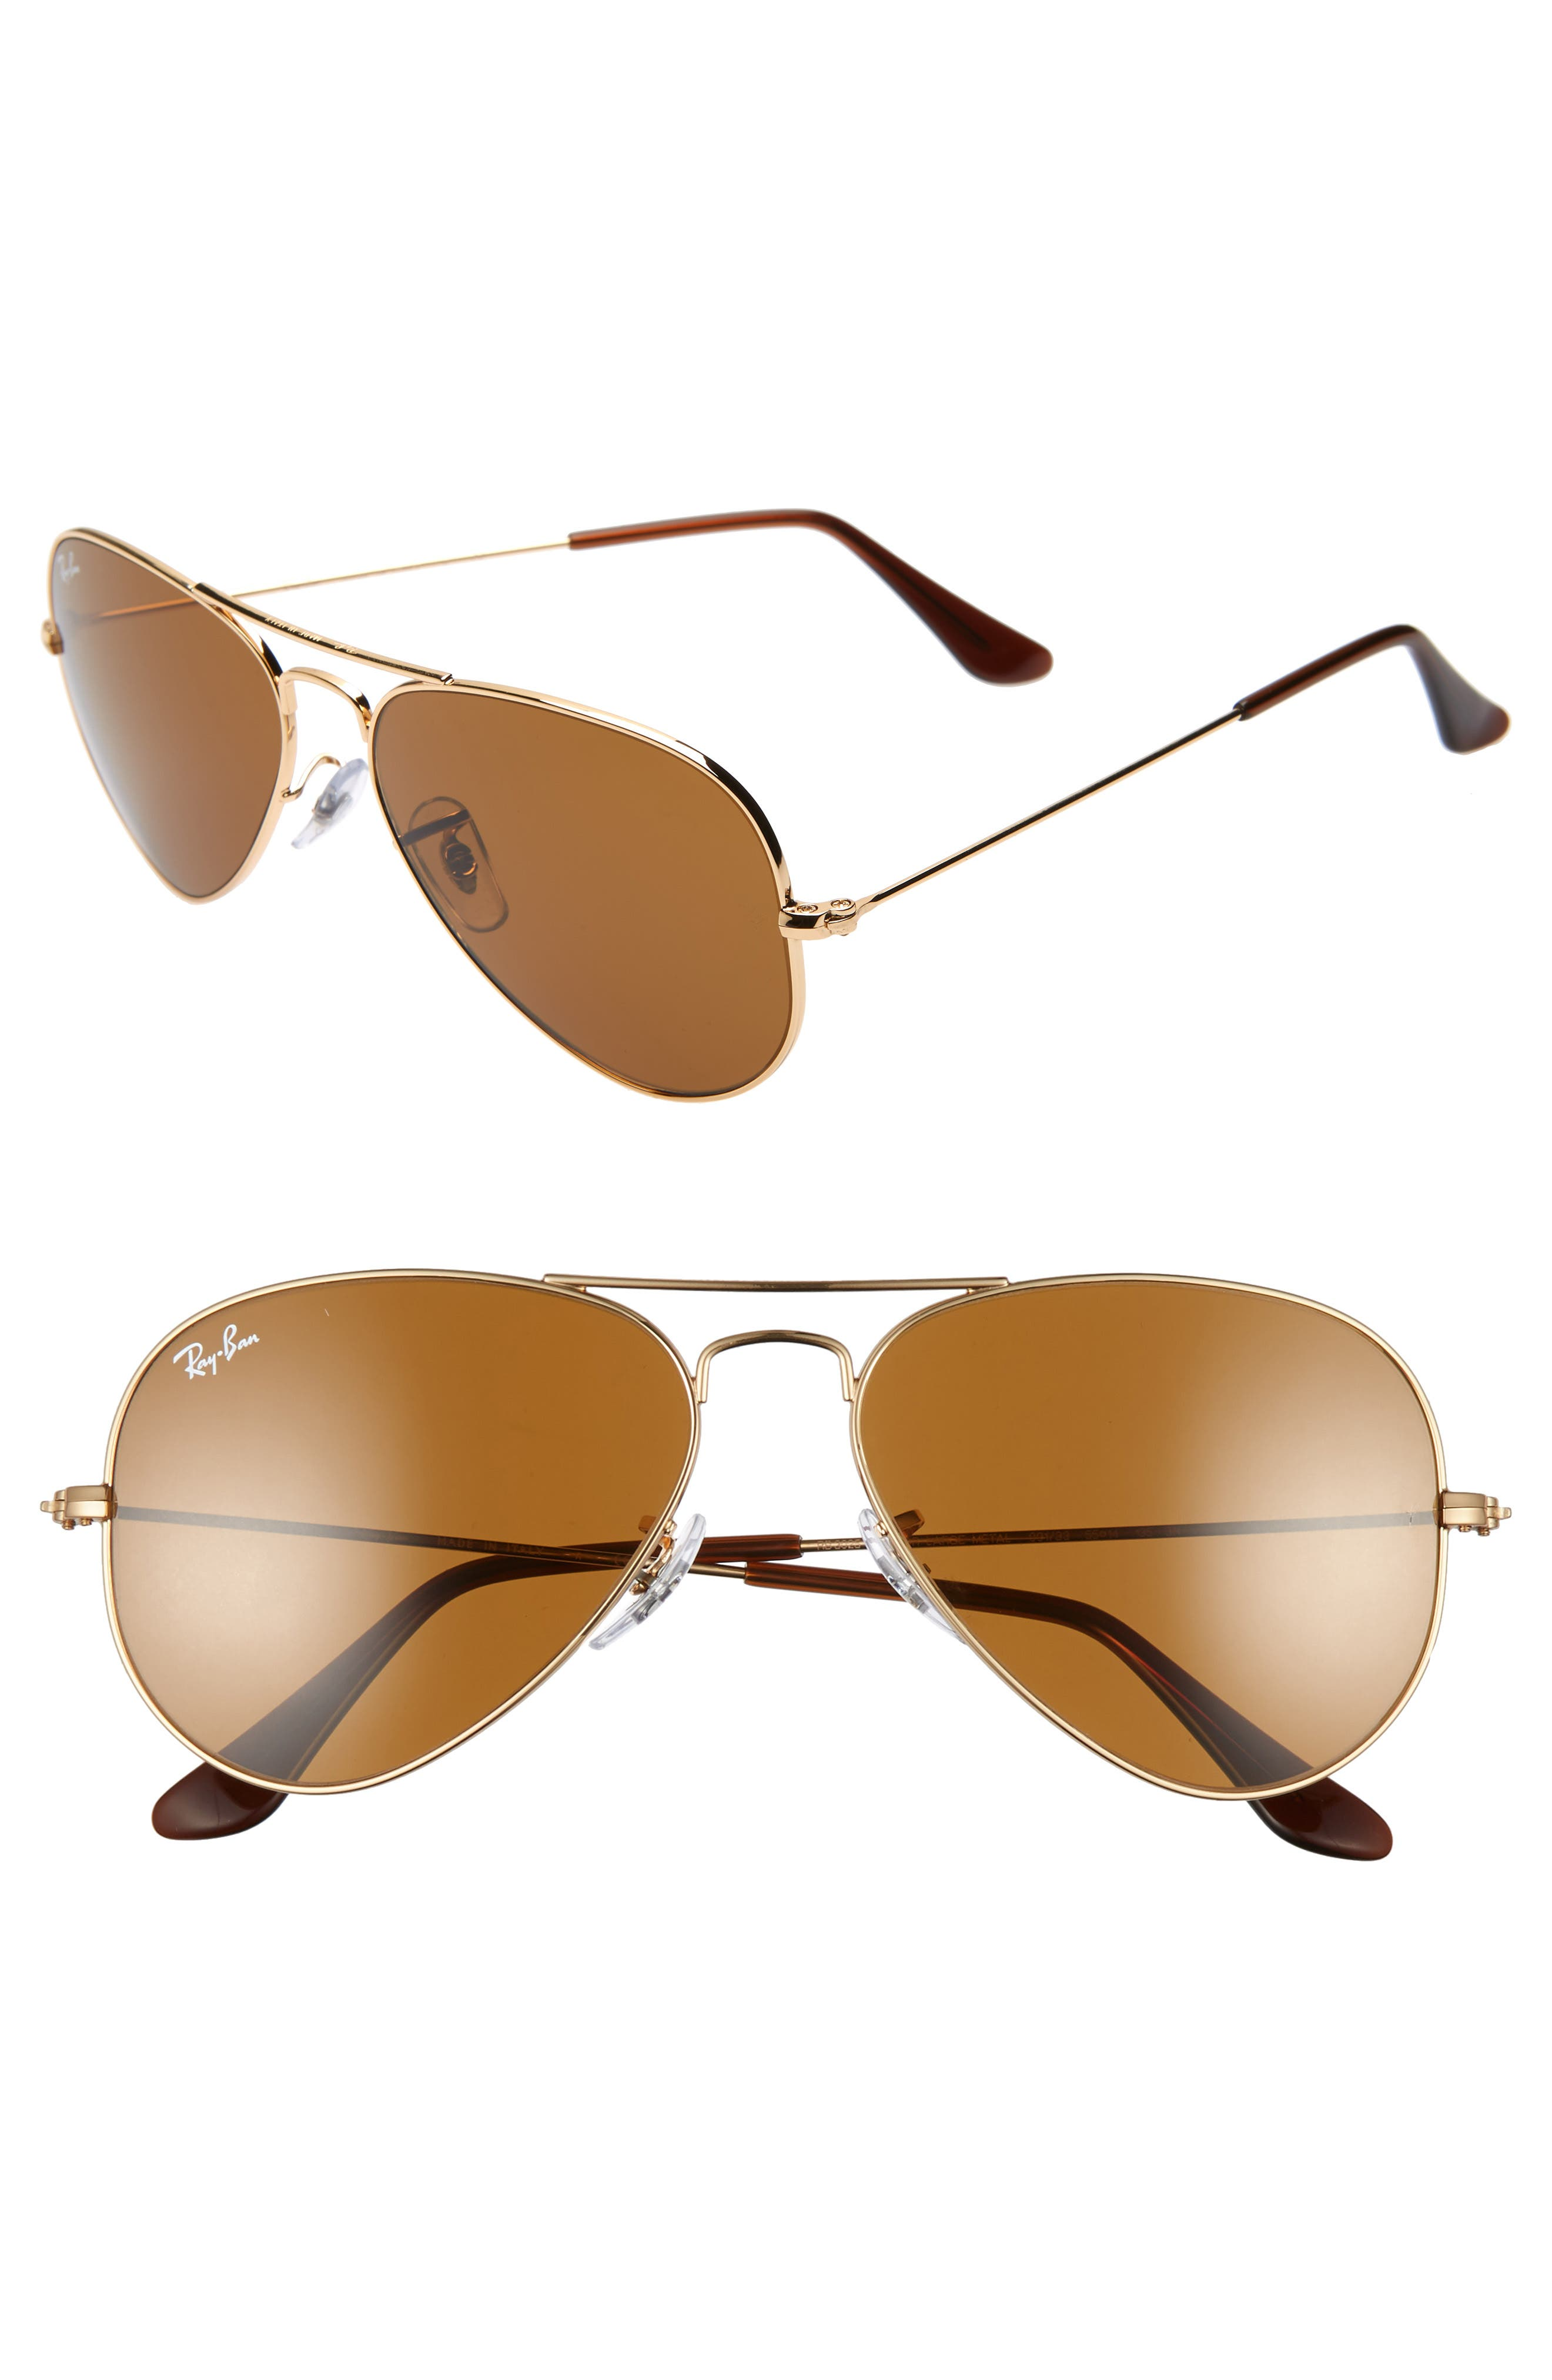 Small Original 55mm Aviator Sunglasses,                             Main thumbnail 1, color,                             GOLD/ BROWN SOLID